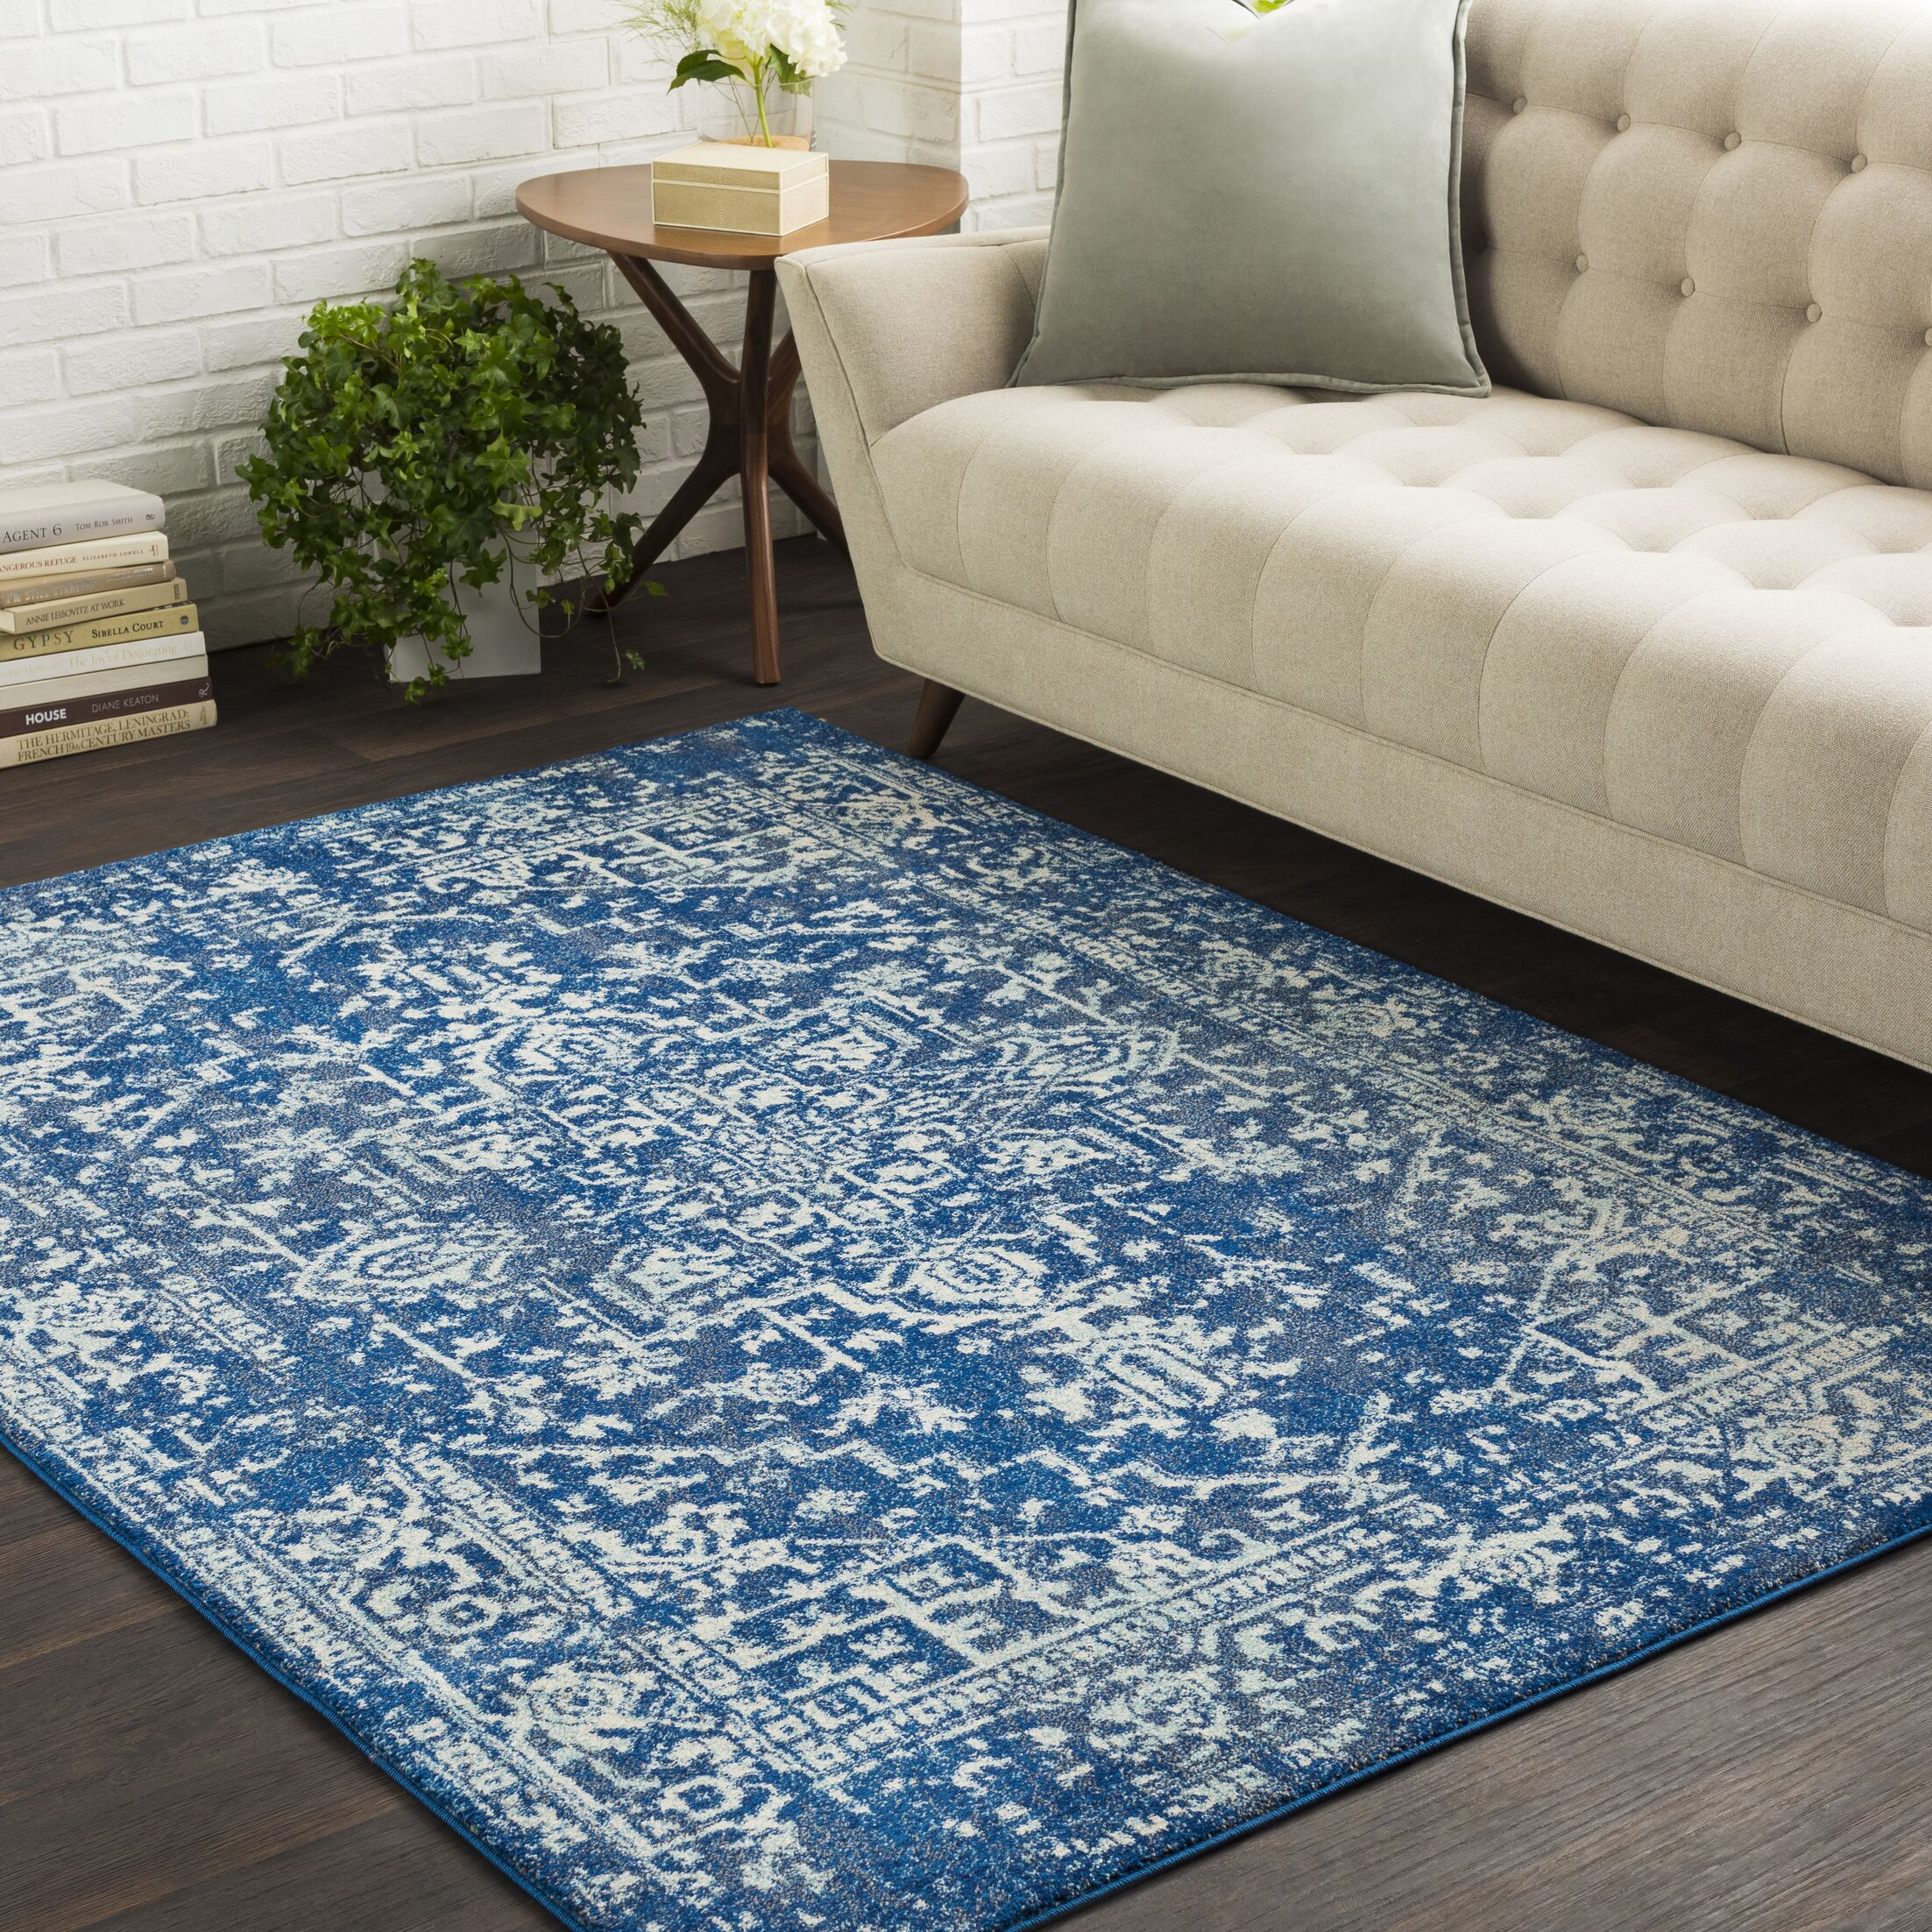 Hillsby Geometric Blue Area Rug Rug Size: Rectangle 9'3